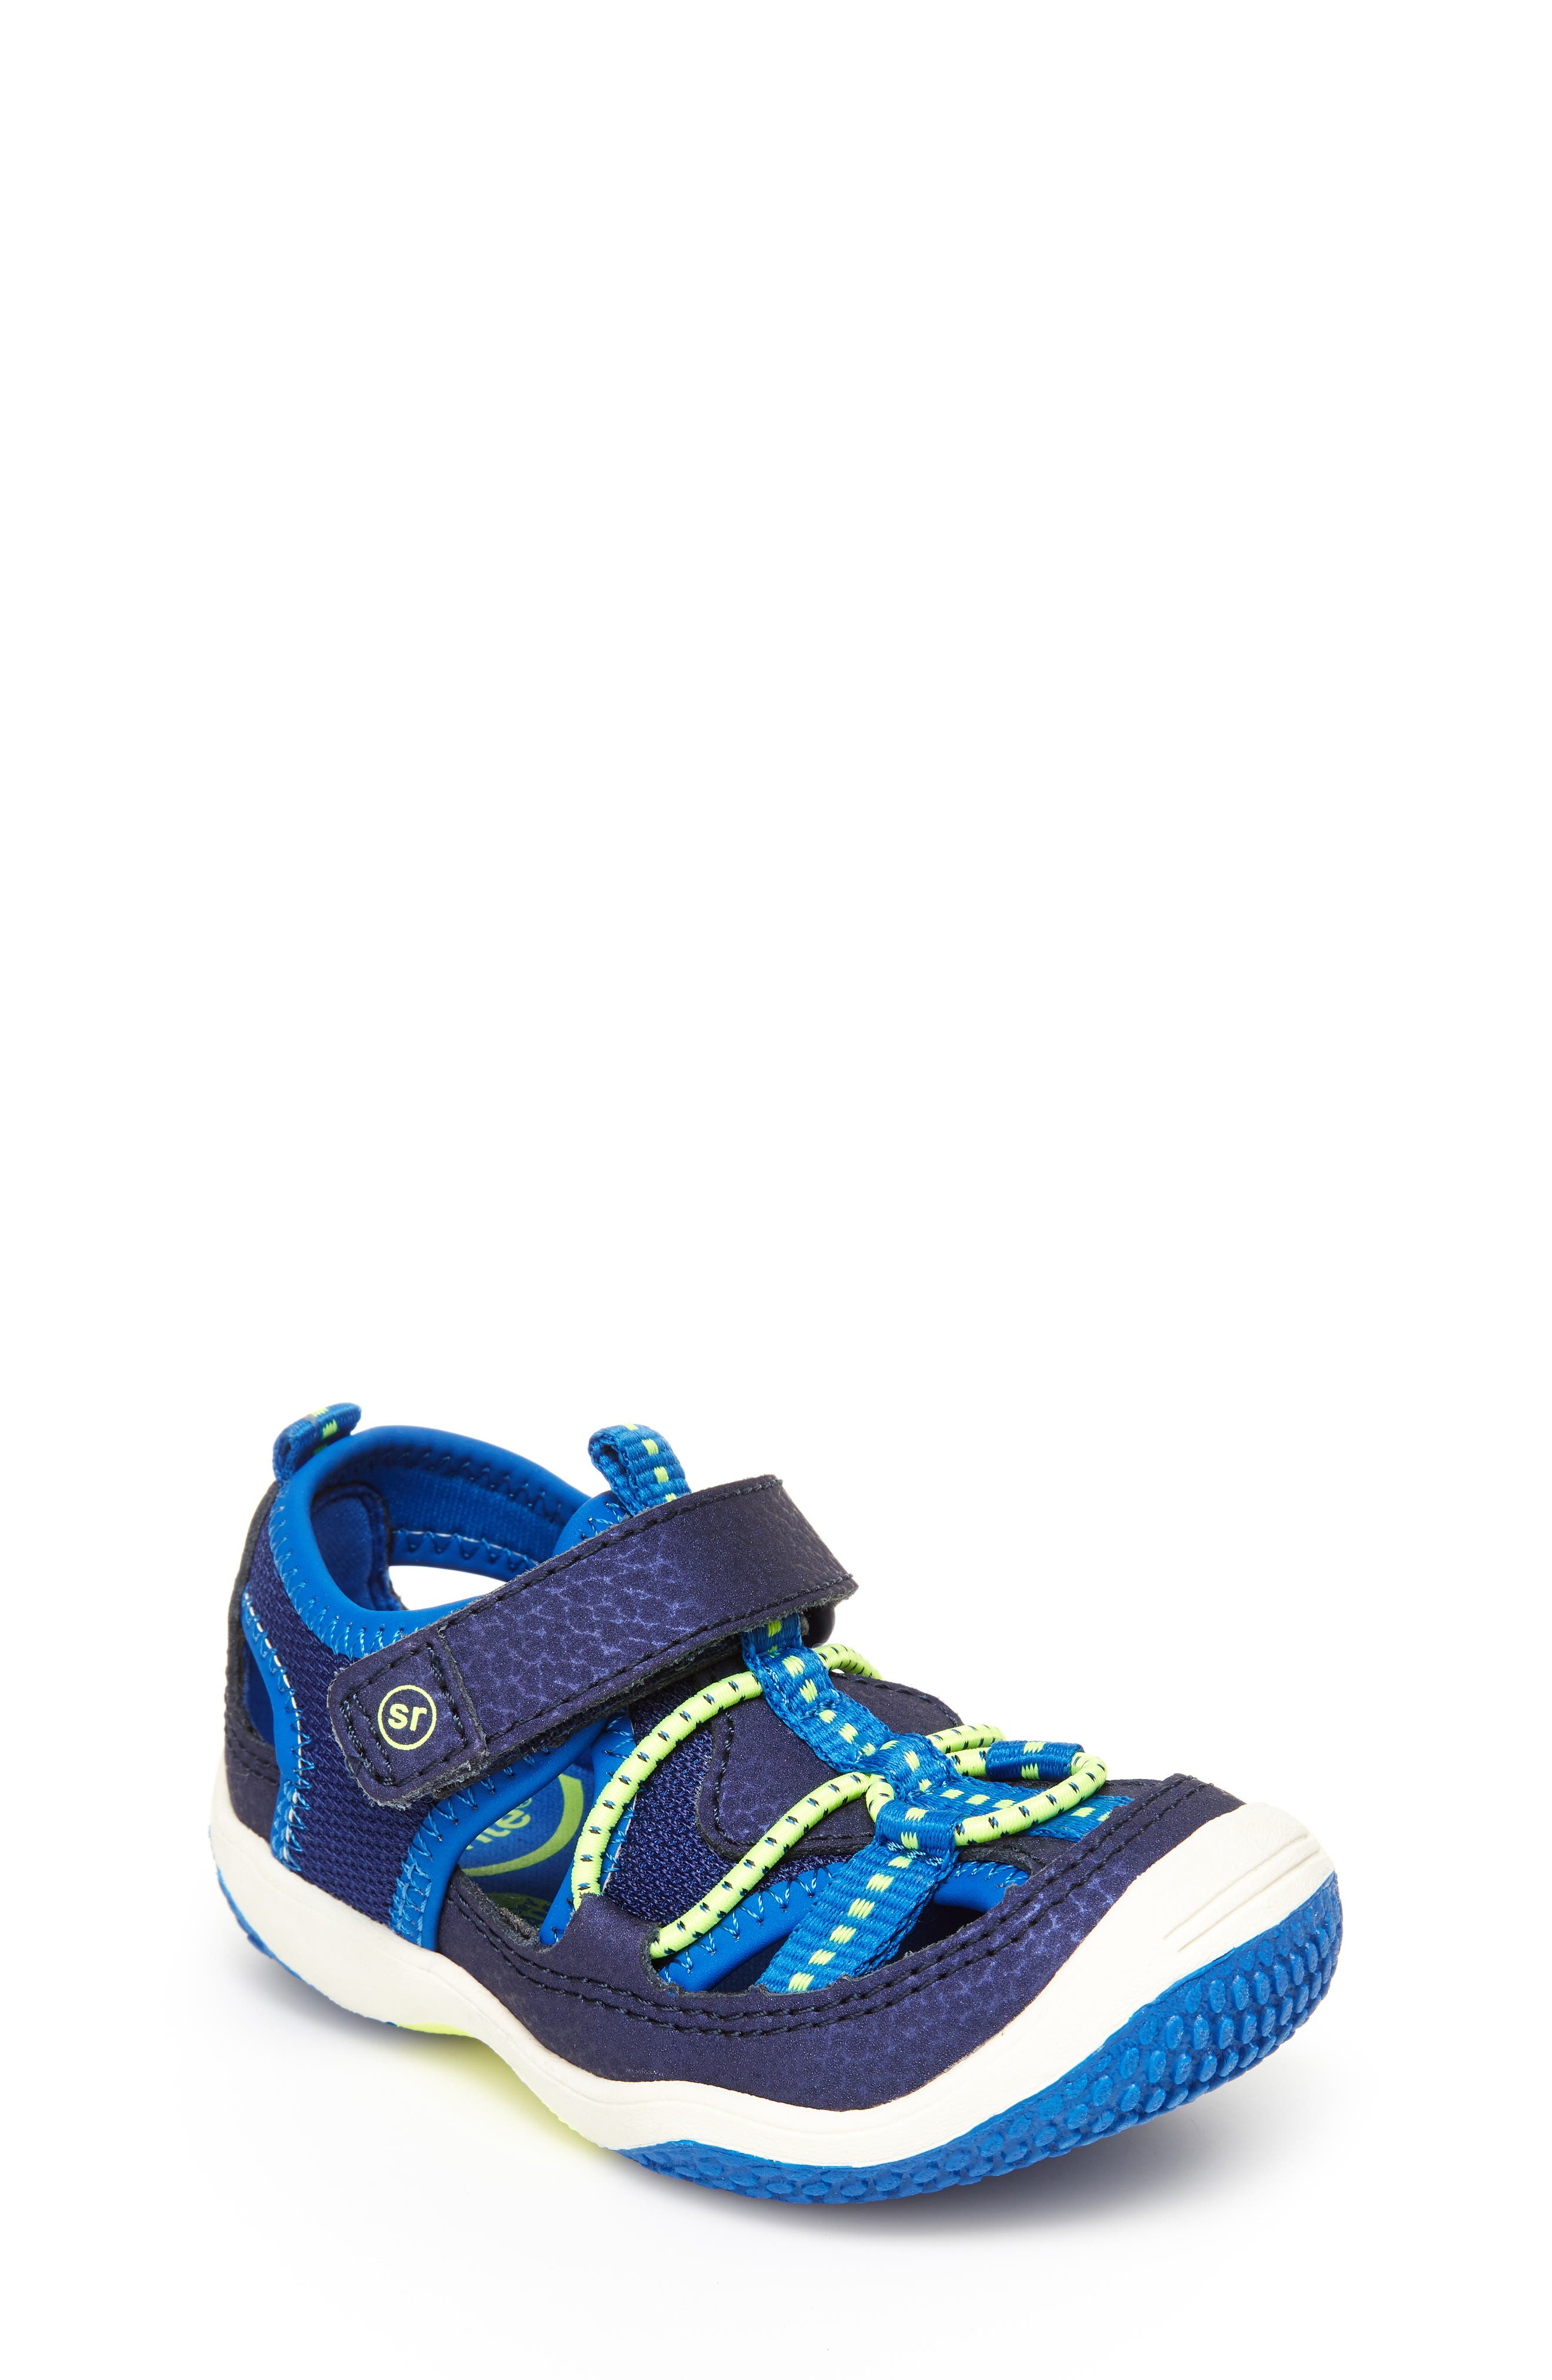 STRIDE RITE Marina Water Sandal, Main, color, ELECTRIC BLUE LEATHER/ TEXTILE